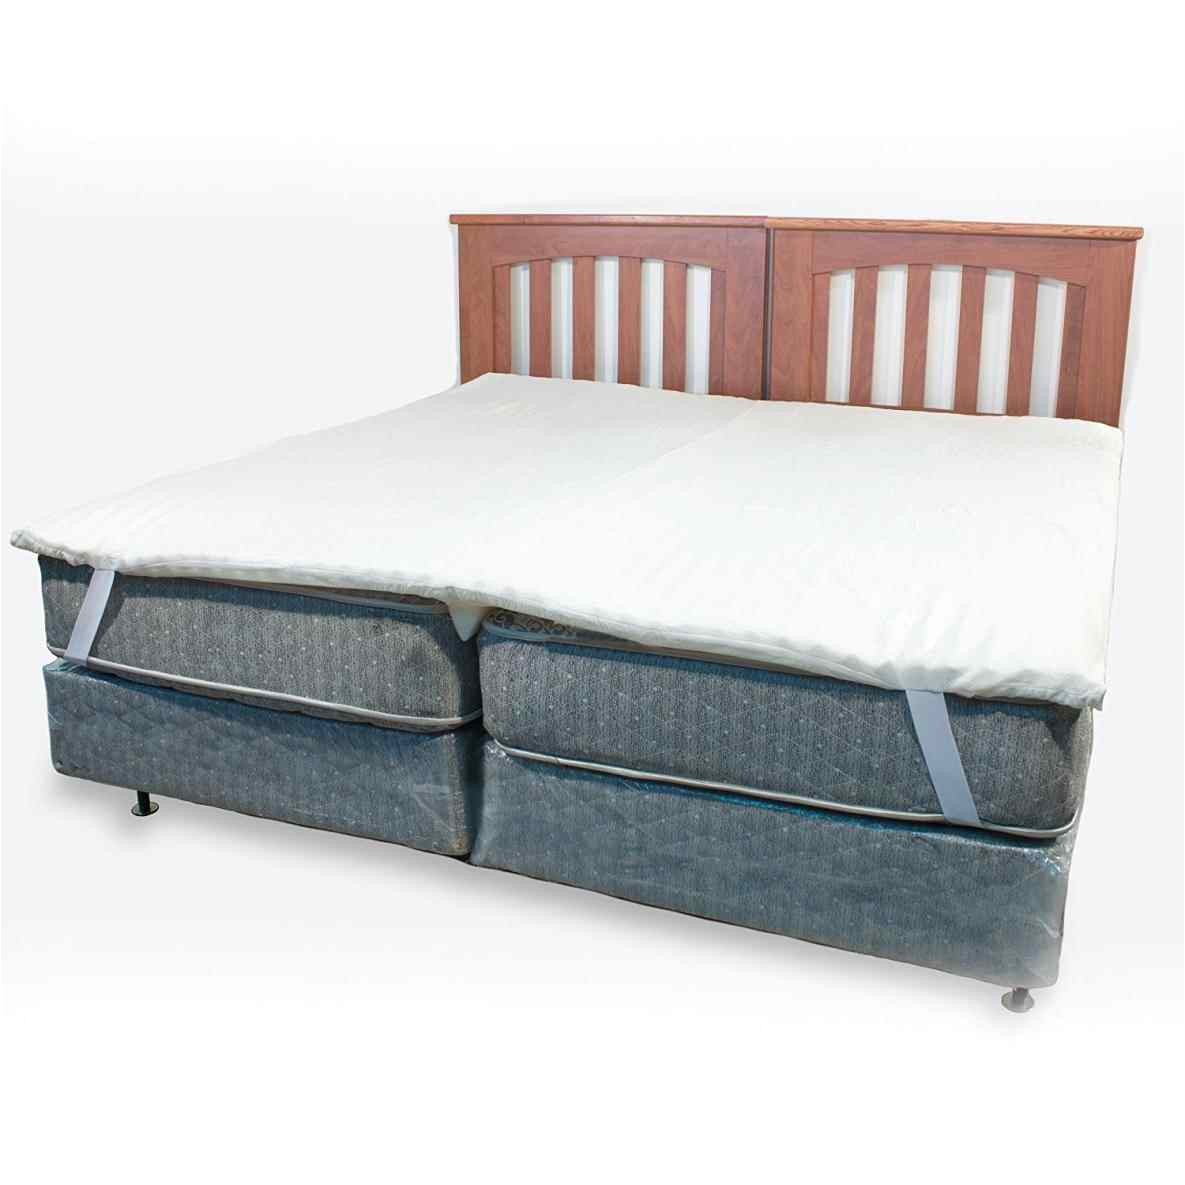 sleep number beds consumer reports